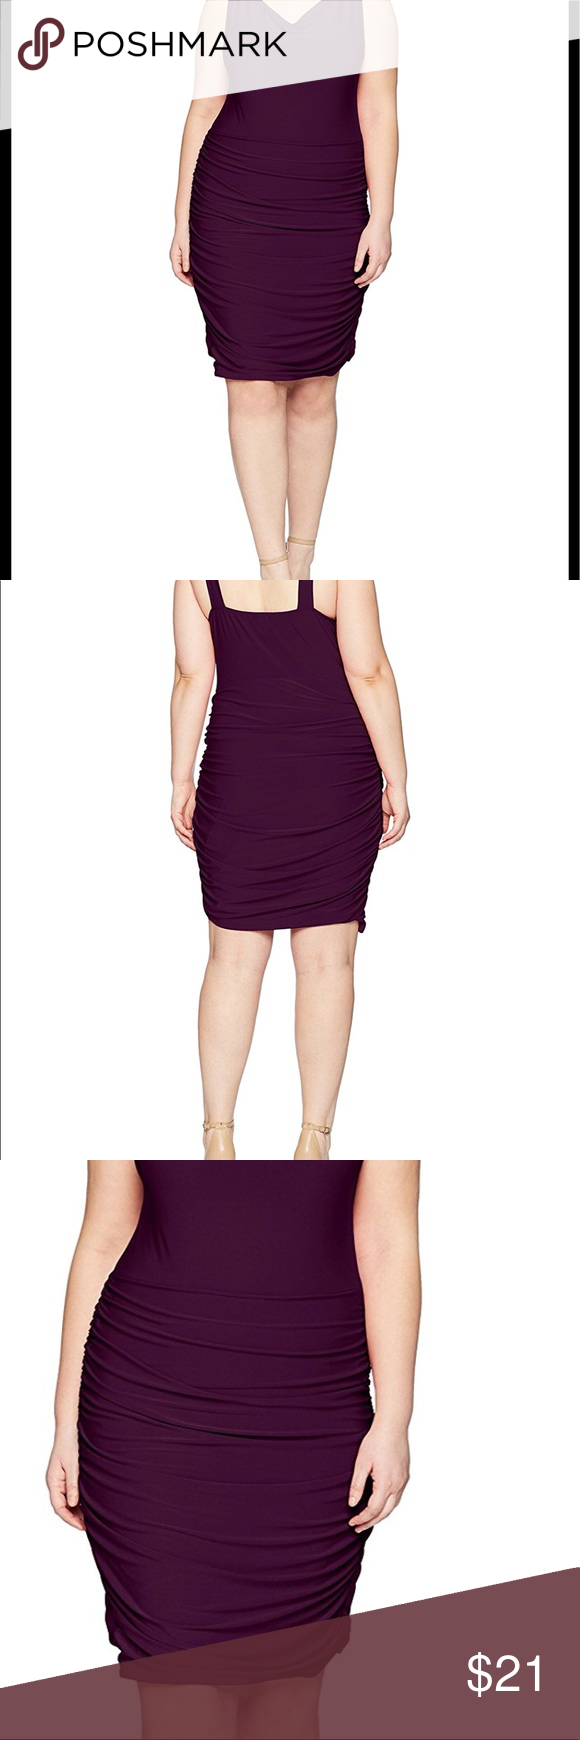 Rouched Sweetheart Stretch Bodycon Dress Plus Sized 92 Polyester 8 Spandex Pull On Closure Dresses Dresses Bodycon Dress Clothes Design [ 1740 x 580 Pixel ]